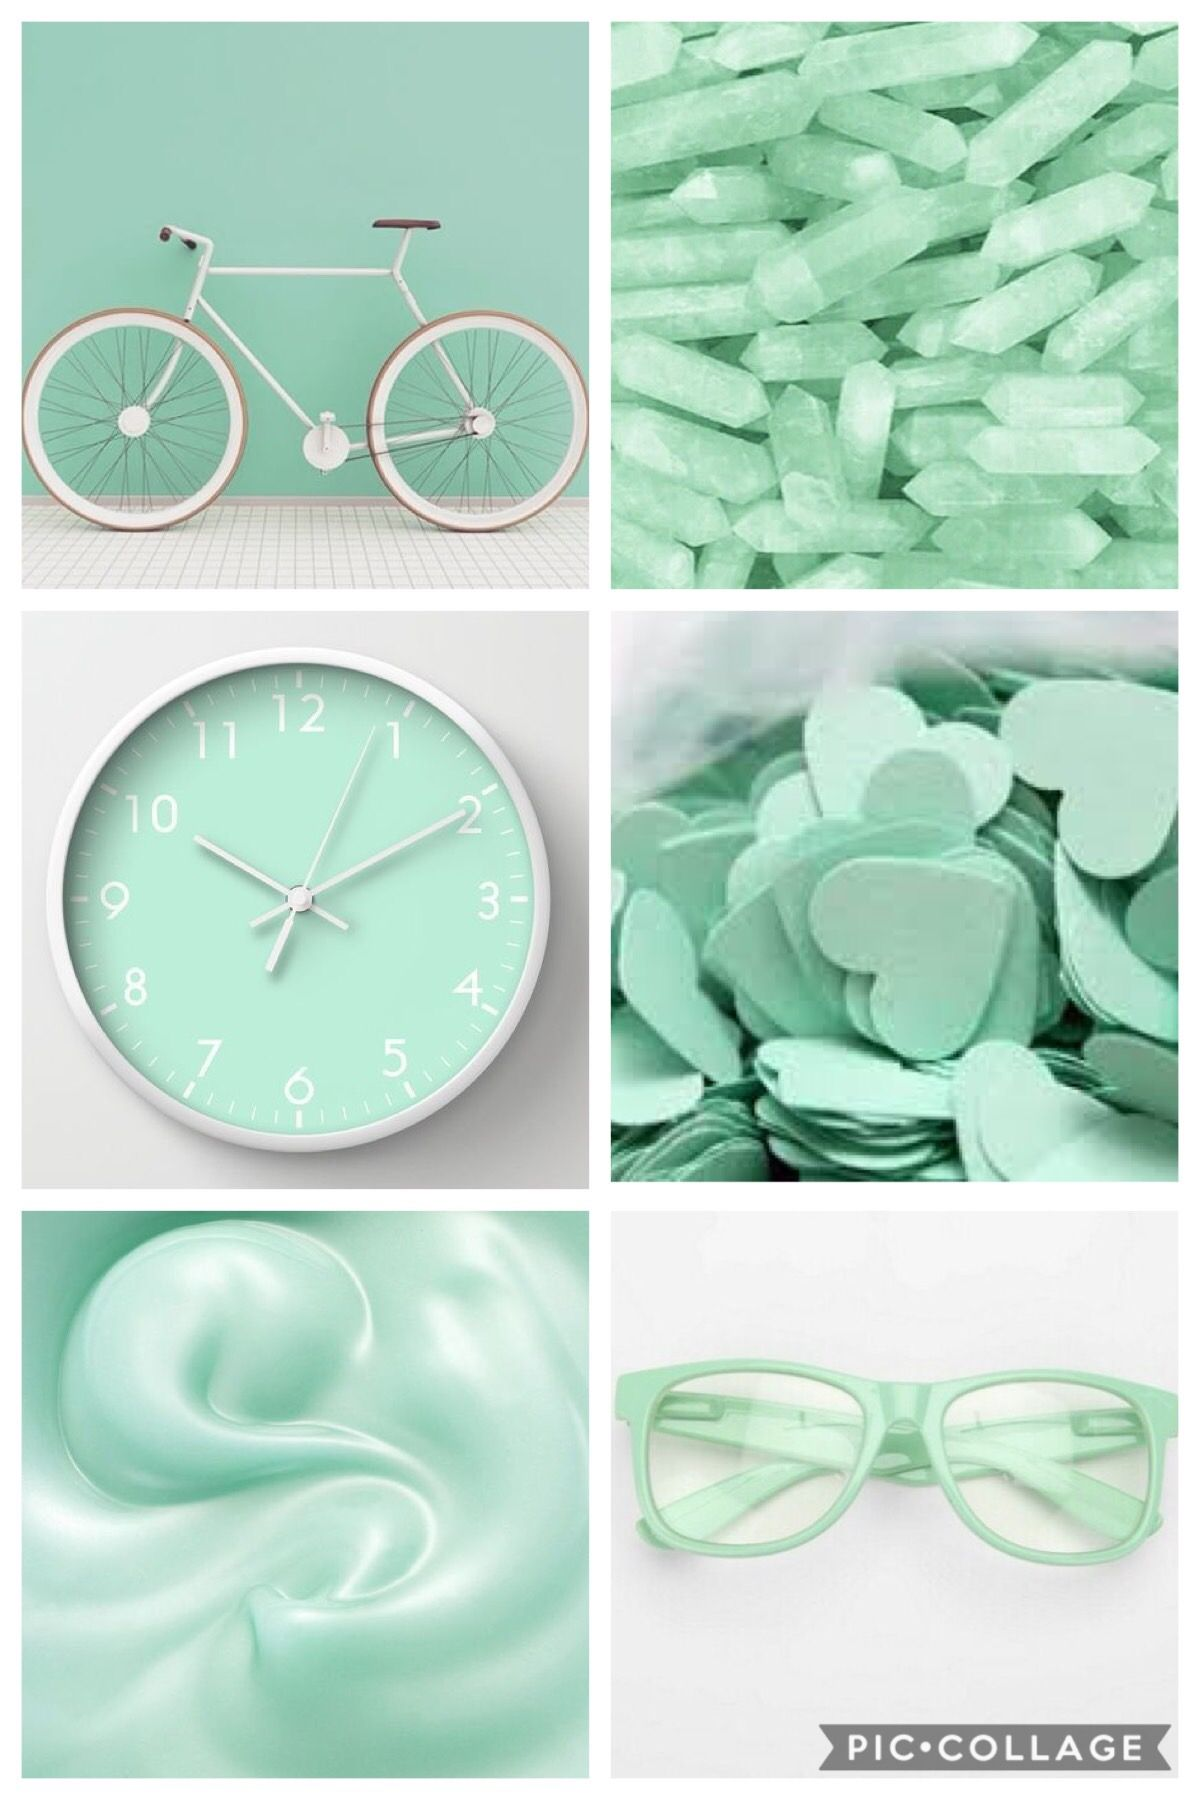 Mint aesthetic wallpapers Mint aesthetic, Aesthetic